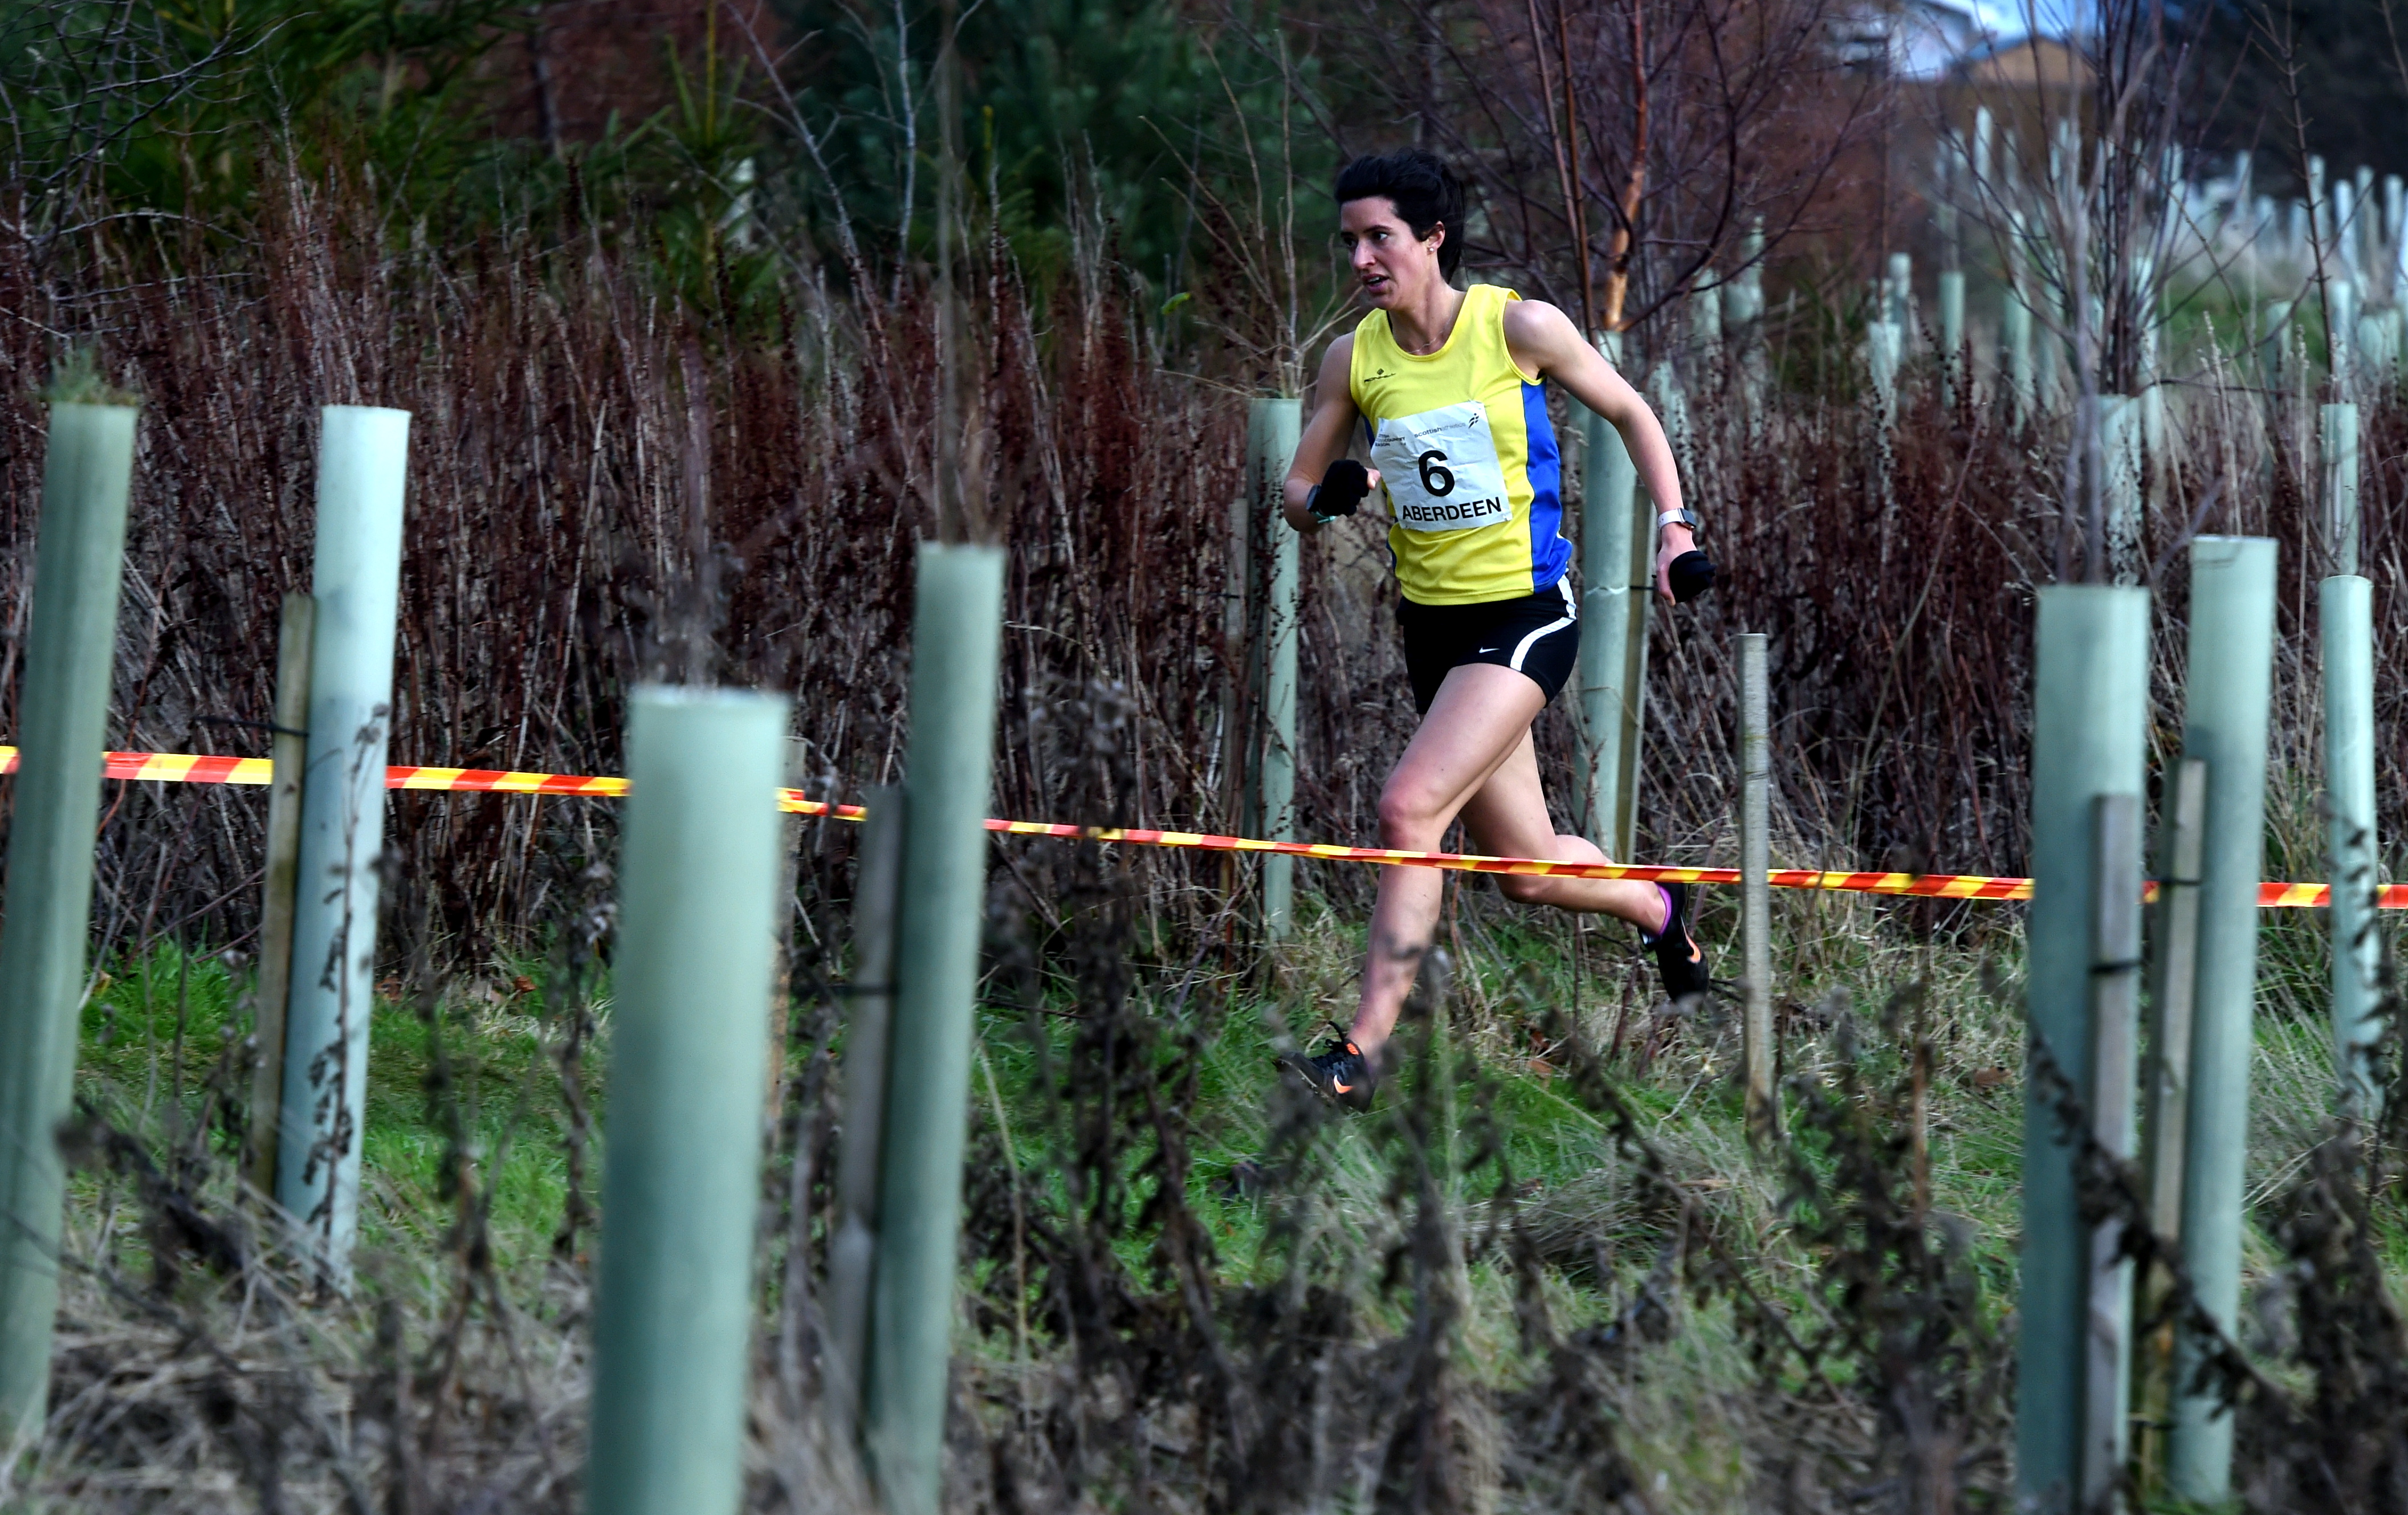 Morag Millar on her way to winning the the women's race at the Scottish Athletics east district cross country championships at Balgownie playing fields, Aberdeen.  Picture by Jim Irvine.